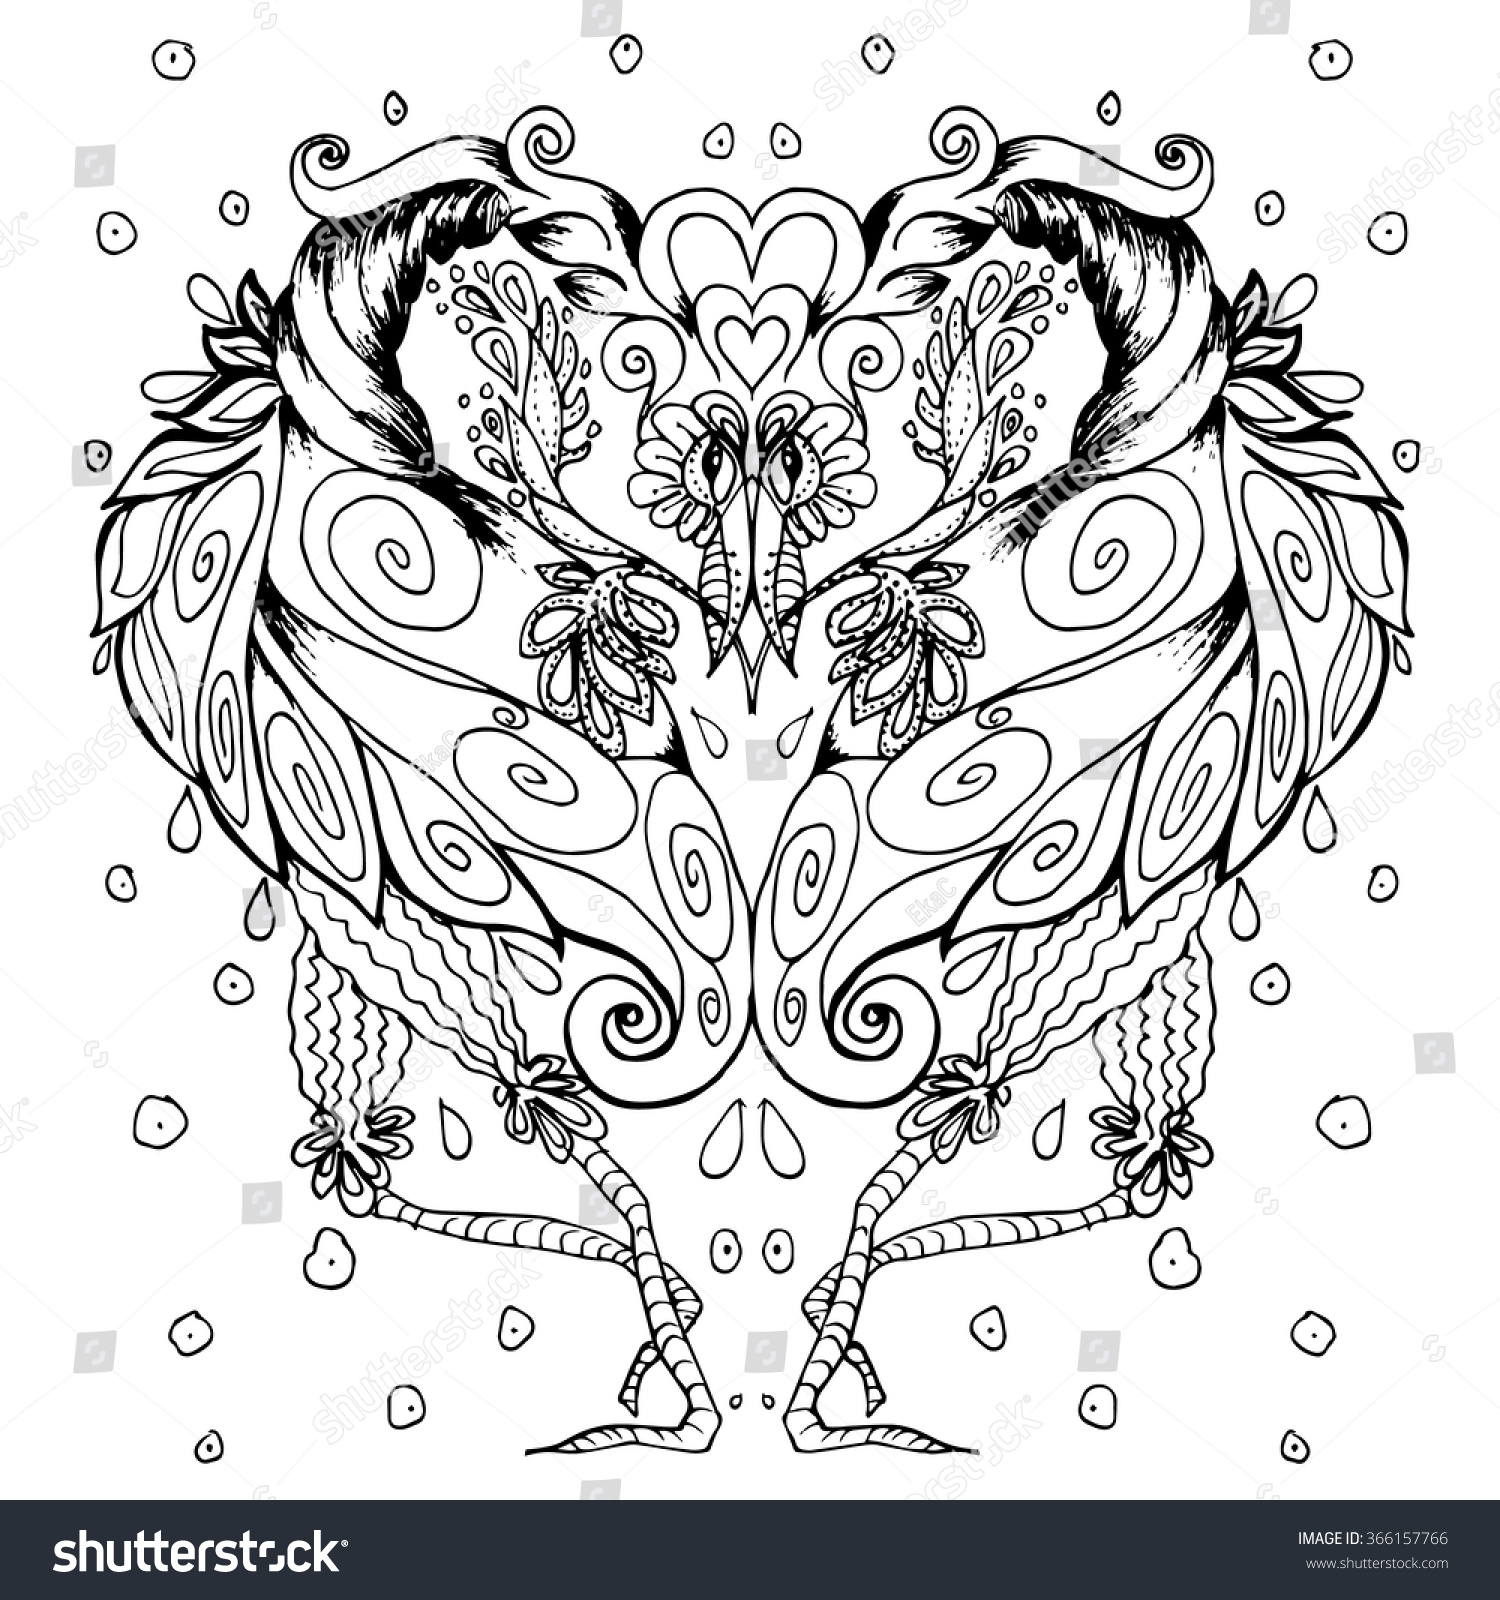 Black And White Bird Drawing For Coloring Book Detailed Design Page Illustration In